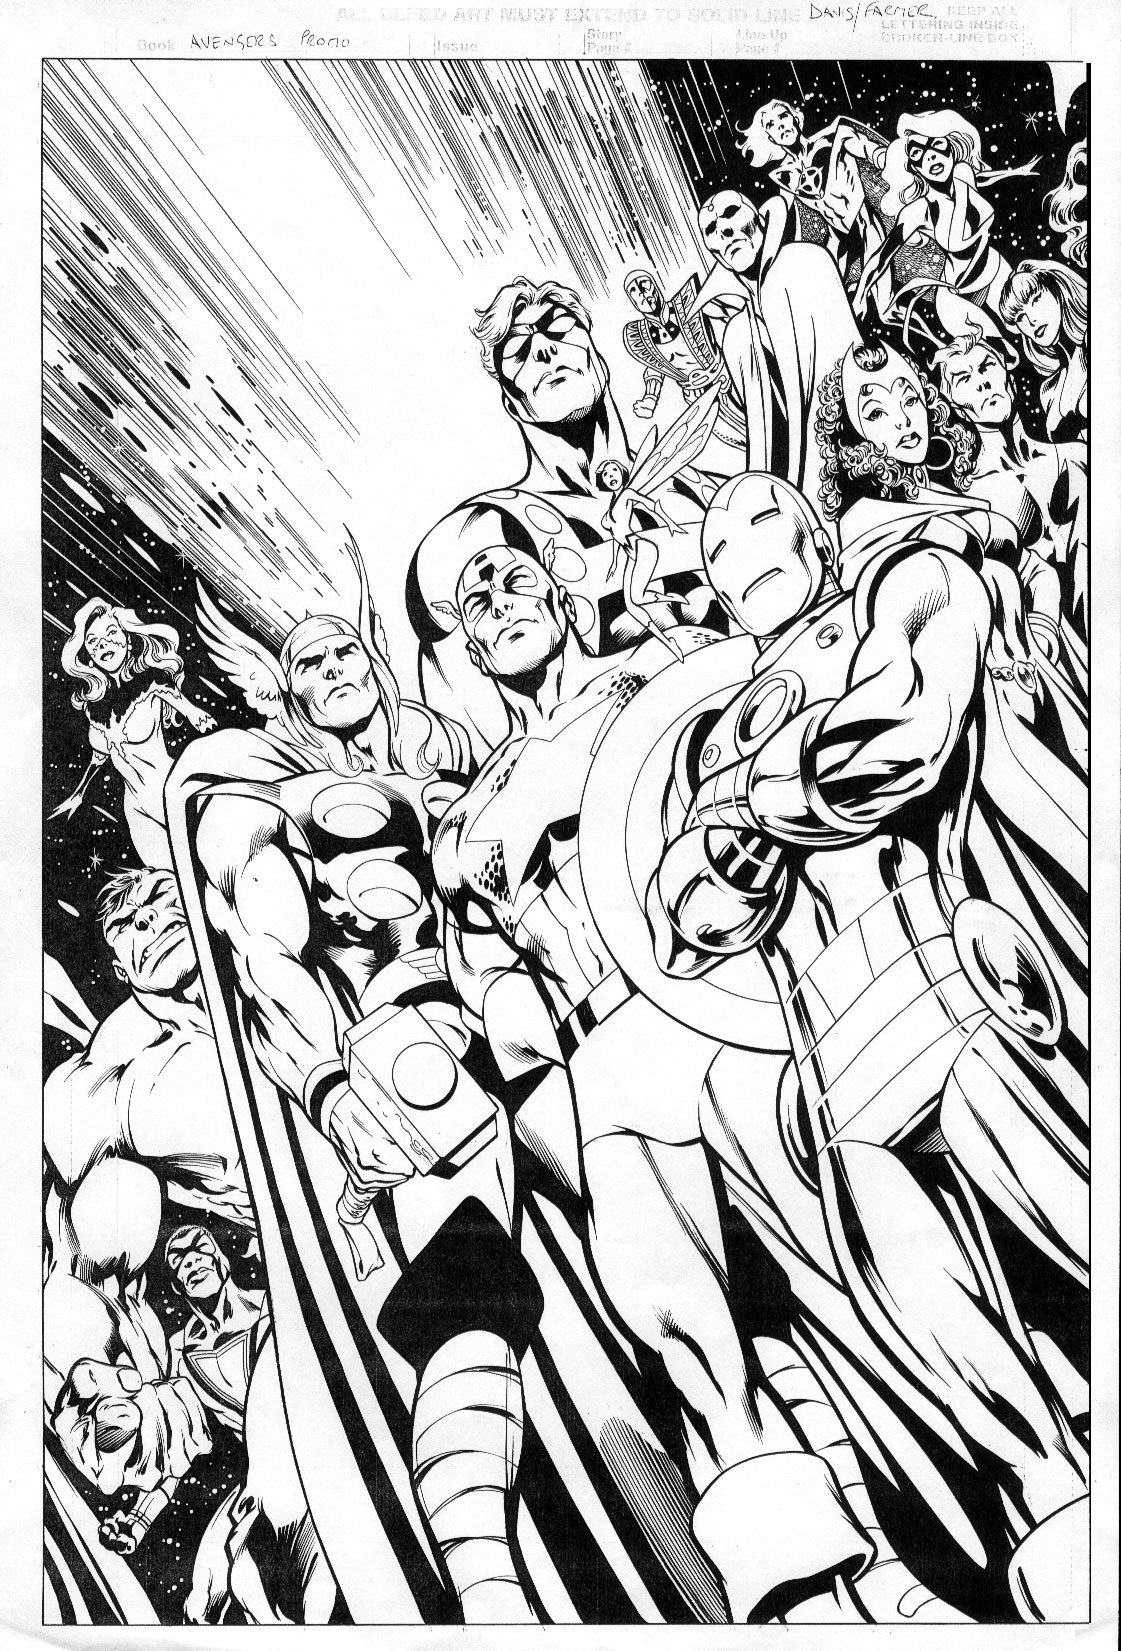 Avengers coloring page to print and color for free